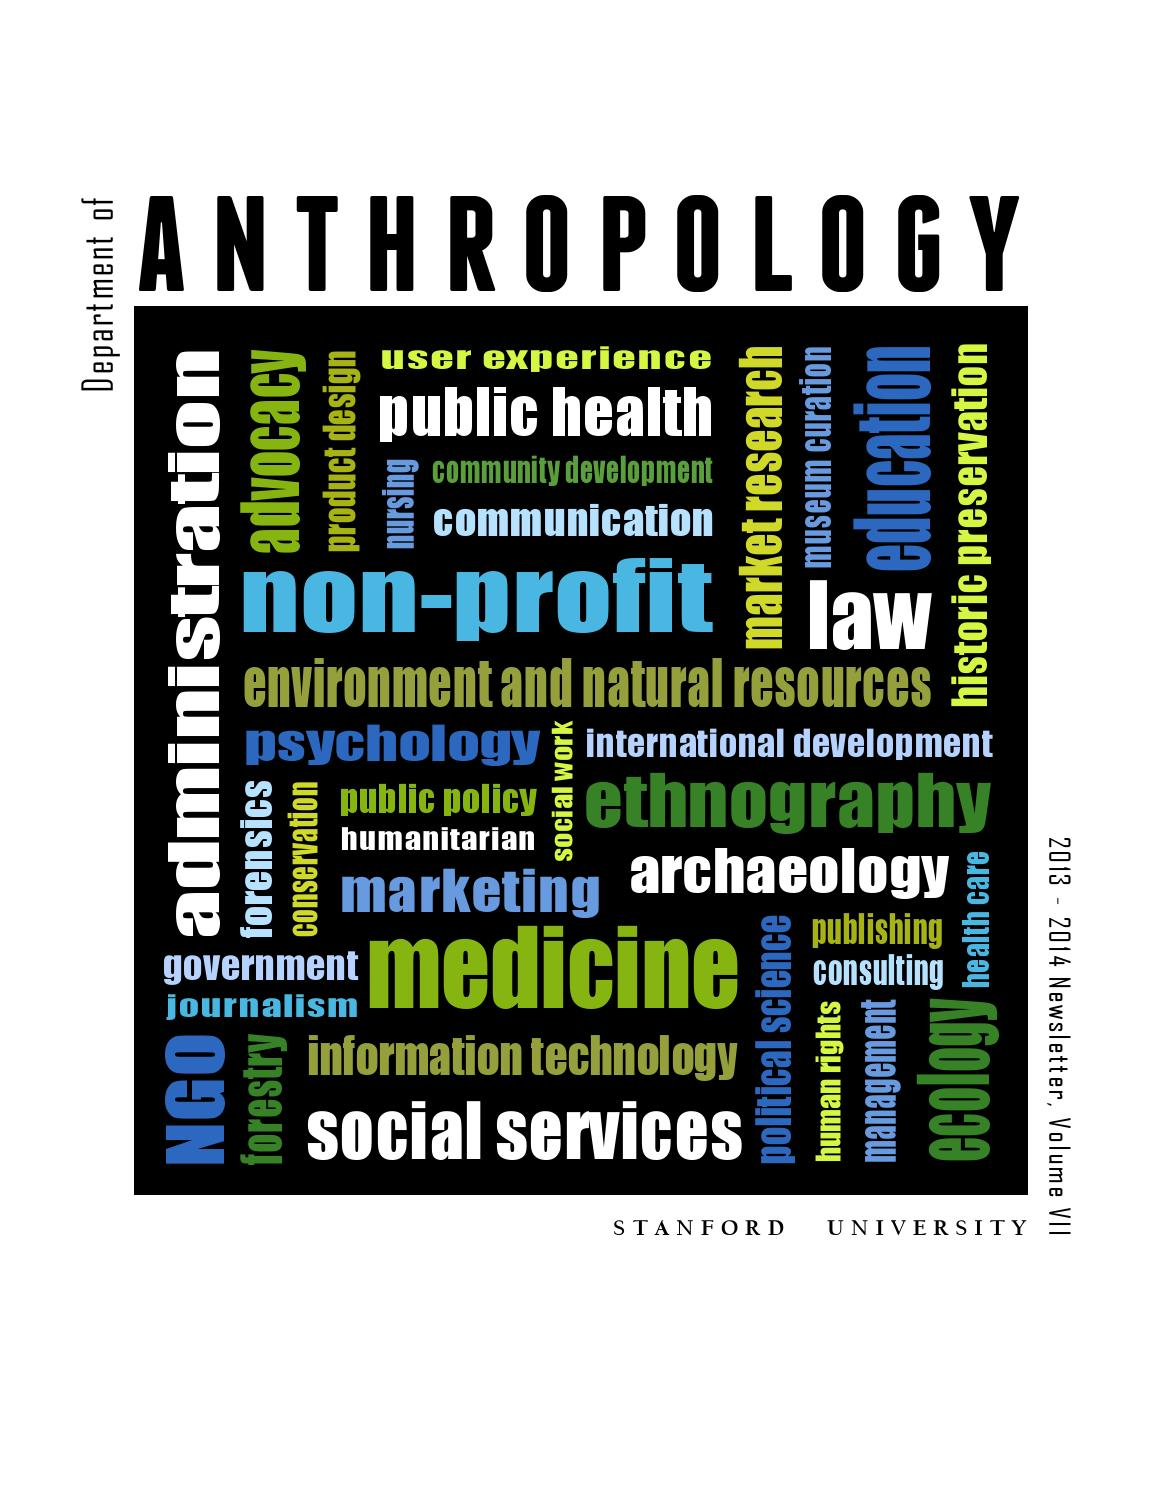 dissertation writing fellowships anthropology Citizens or permanent residents, to support final year of dissertation writing) [12 ]  in the past, fellowships have been awarded to candidates in anthropology,.